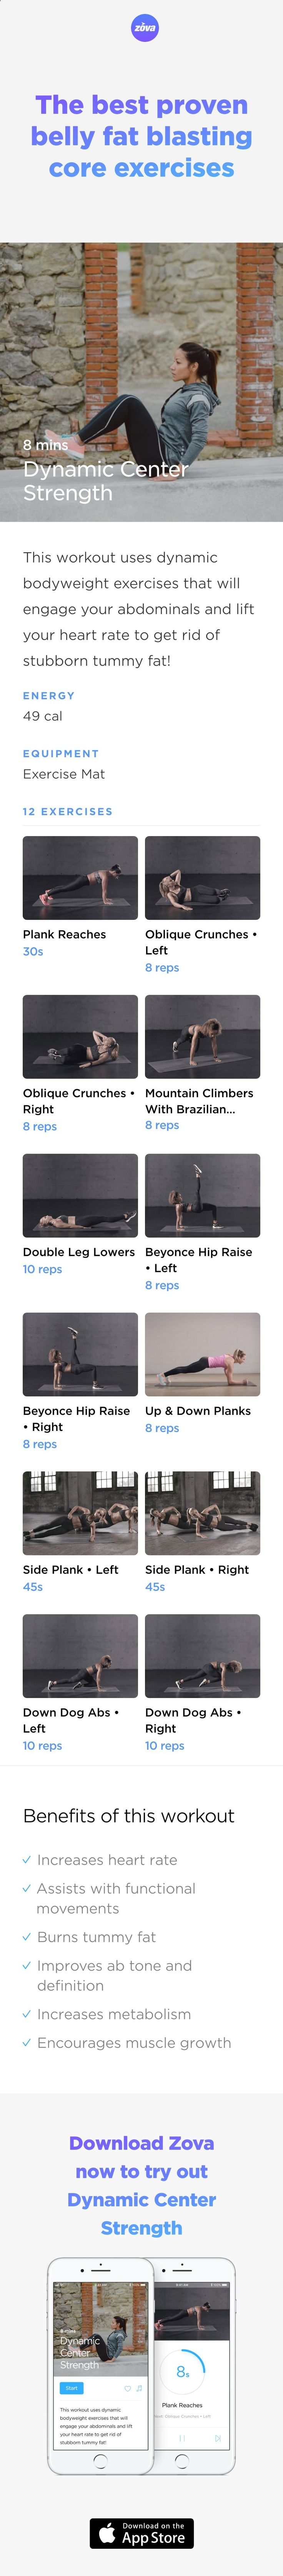 Torch that stubborn belly fat fast with this blend of dynamic strength exercises. They will increase your heart rate and burn fat faster than your standard static exercises, and you'll also be defining and sculpting your abs, not to mention flattening your tummy at the same time! #workout #core #fitness #abs #HIIT